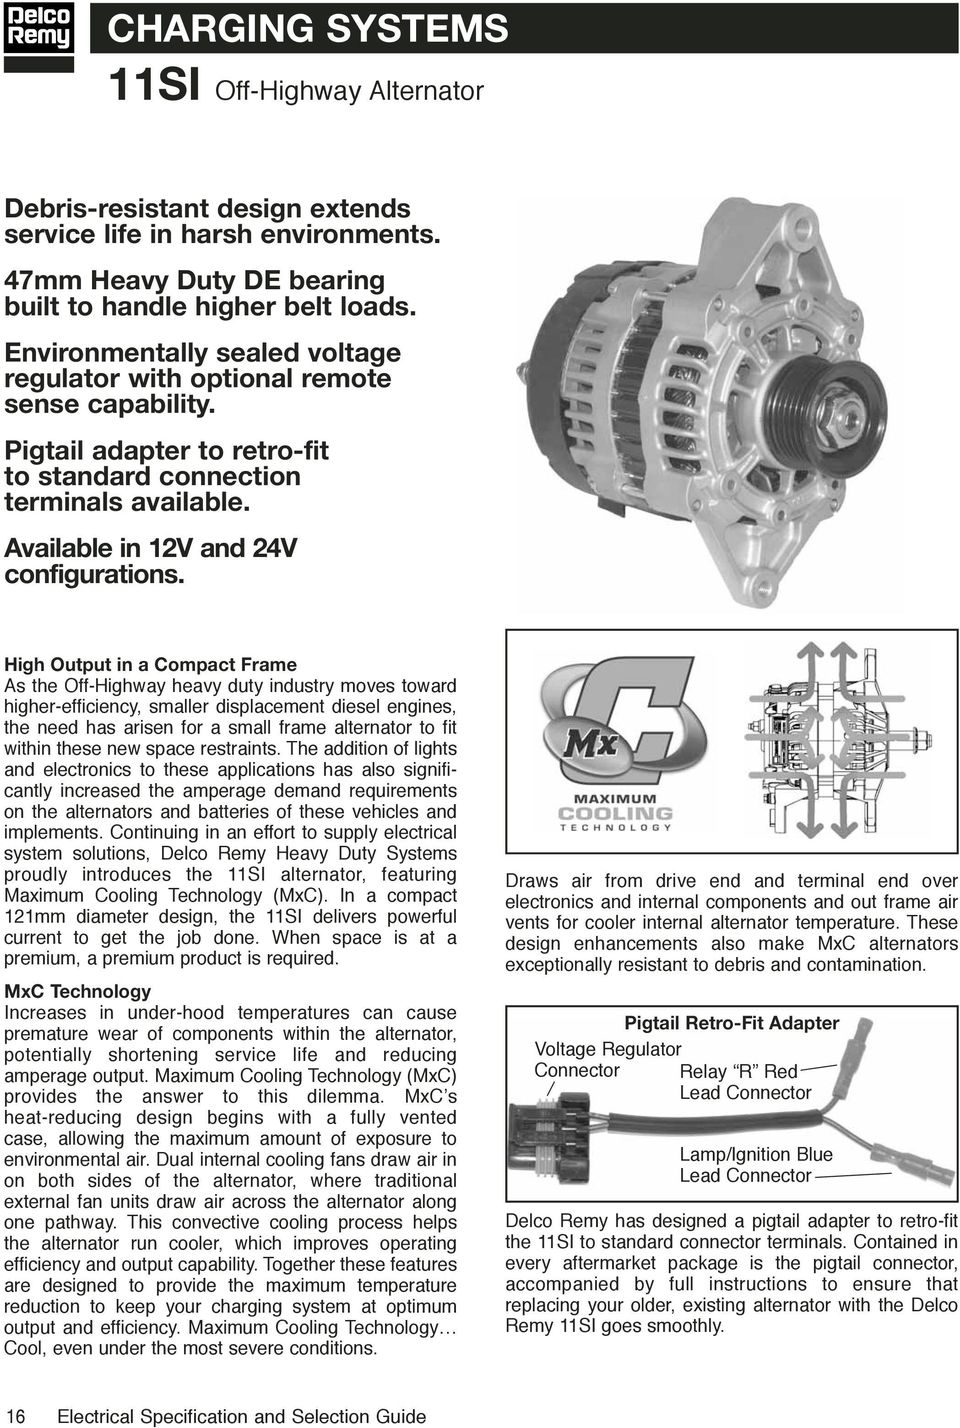 ac delco alternator wiring diagram wiring diagram and hernes delco alternator internal diagram image about wiring